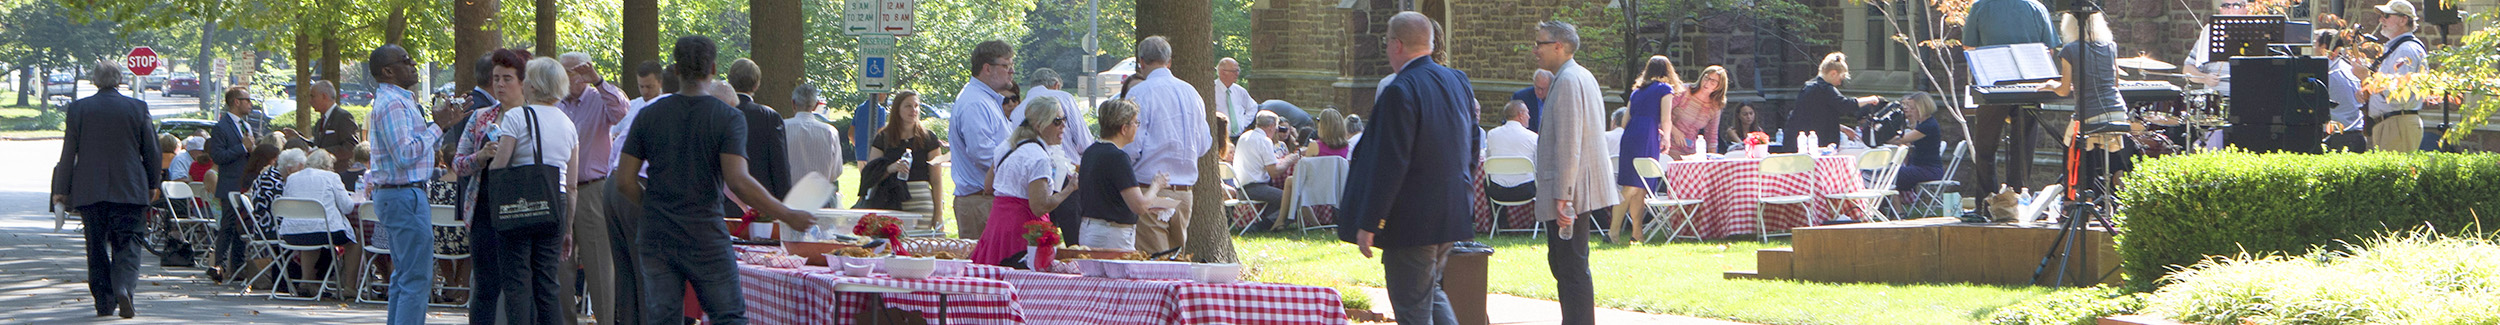 st mikes 17 picnic